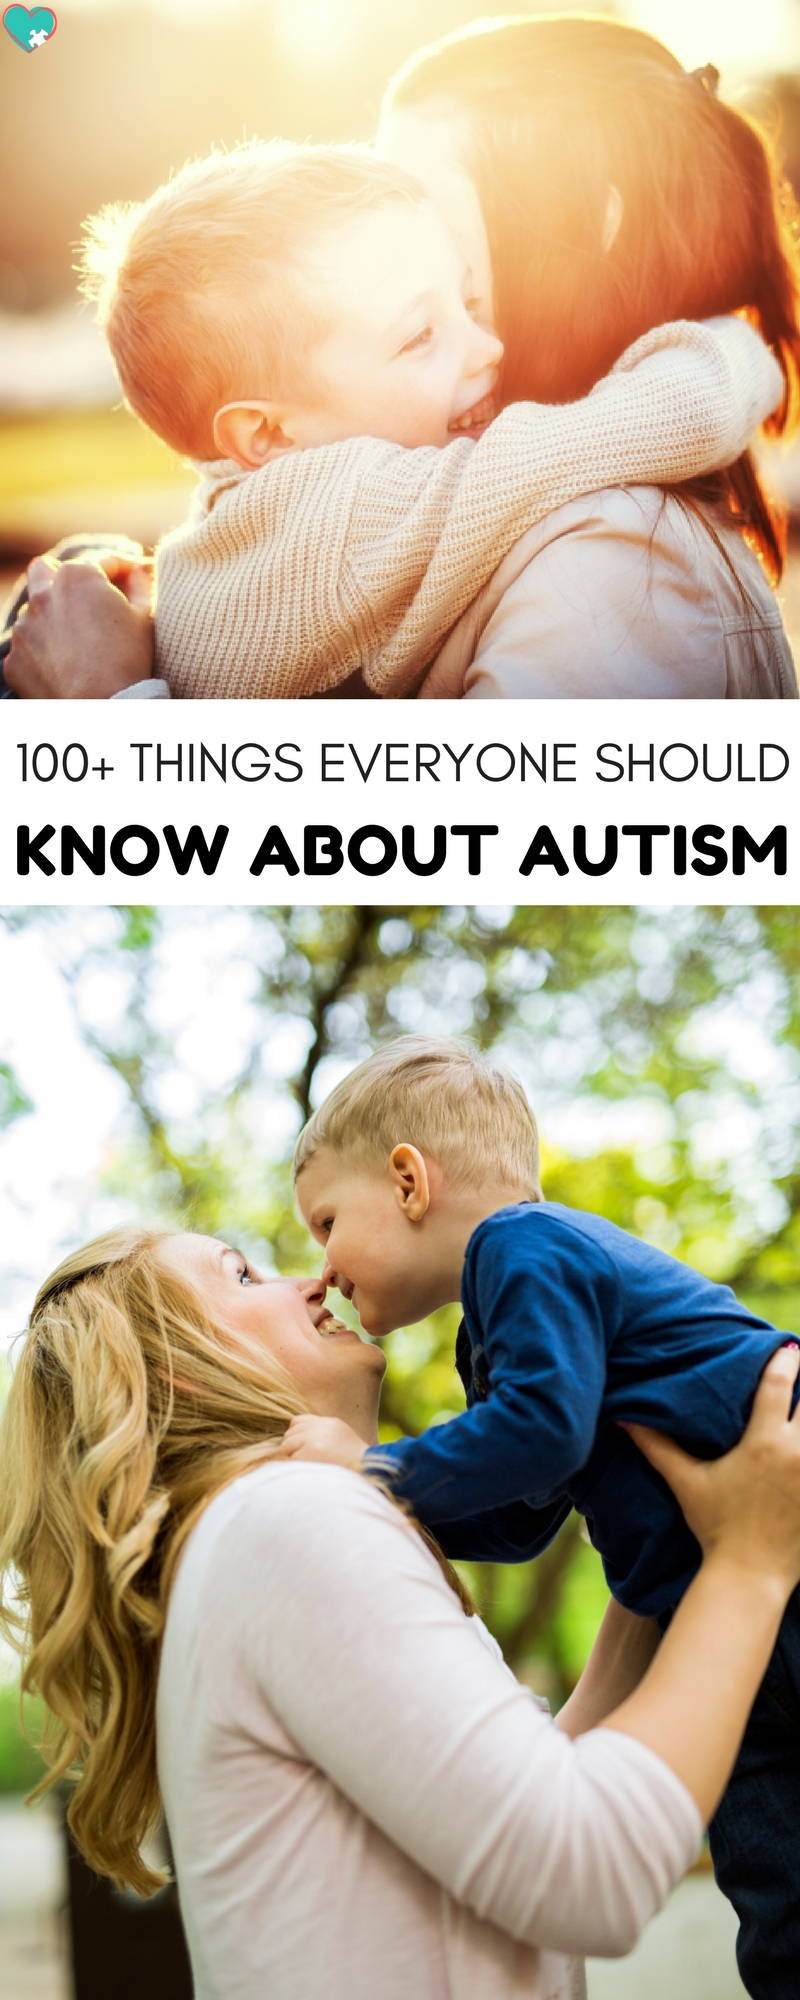 100+ Things to Know About Autism #autism #autistic #actuallyautistic #disability #parenting